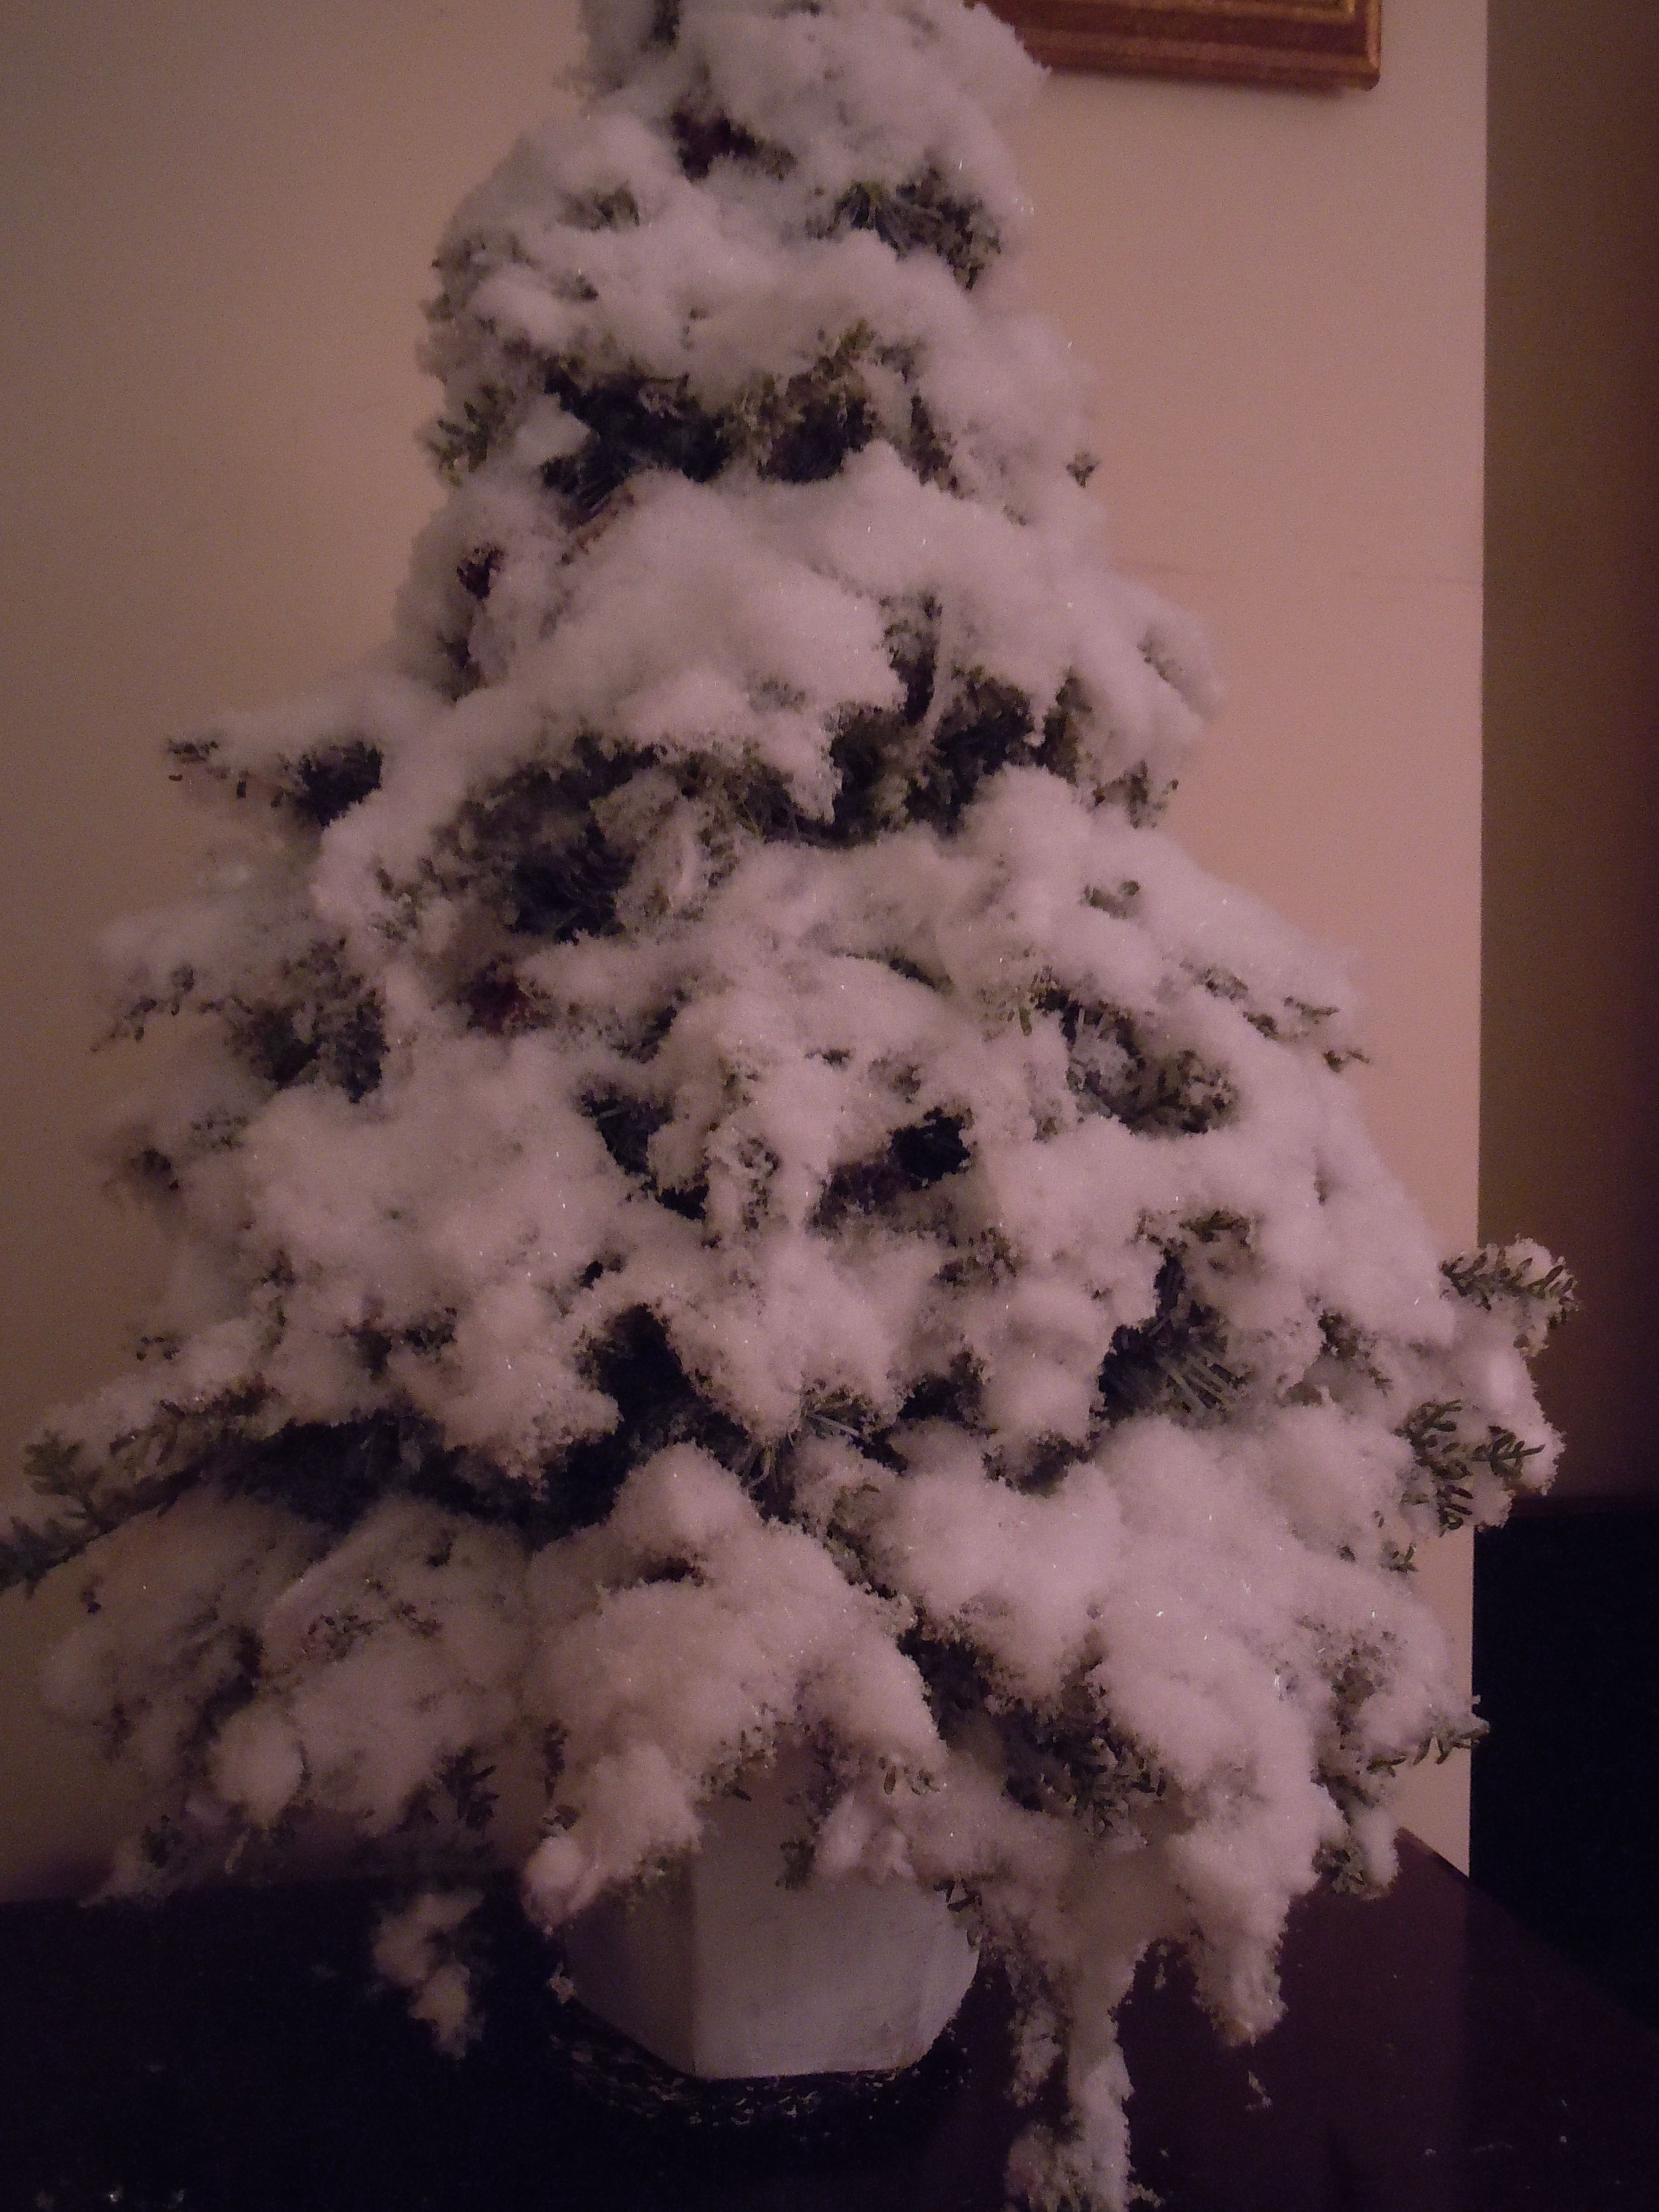 Snow Tree Take Cheap Fake Tree Spray With Glue Add Some Torn Cotton Balls Spray With Glue Again And Christmas Decor Diy Christmas Diy Christmas Decorations